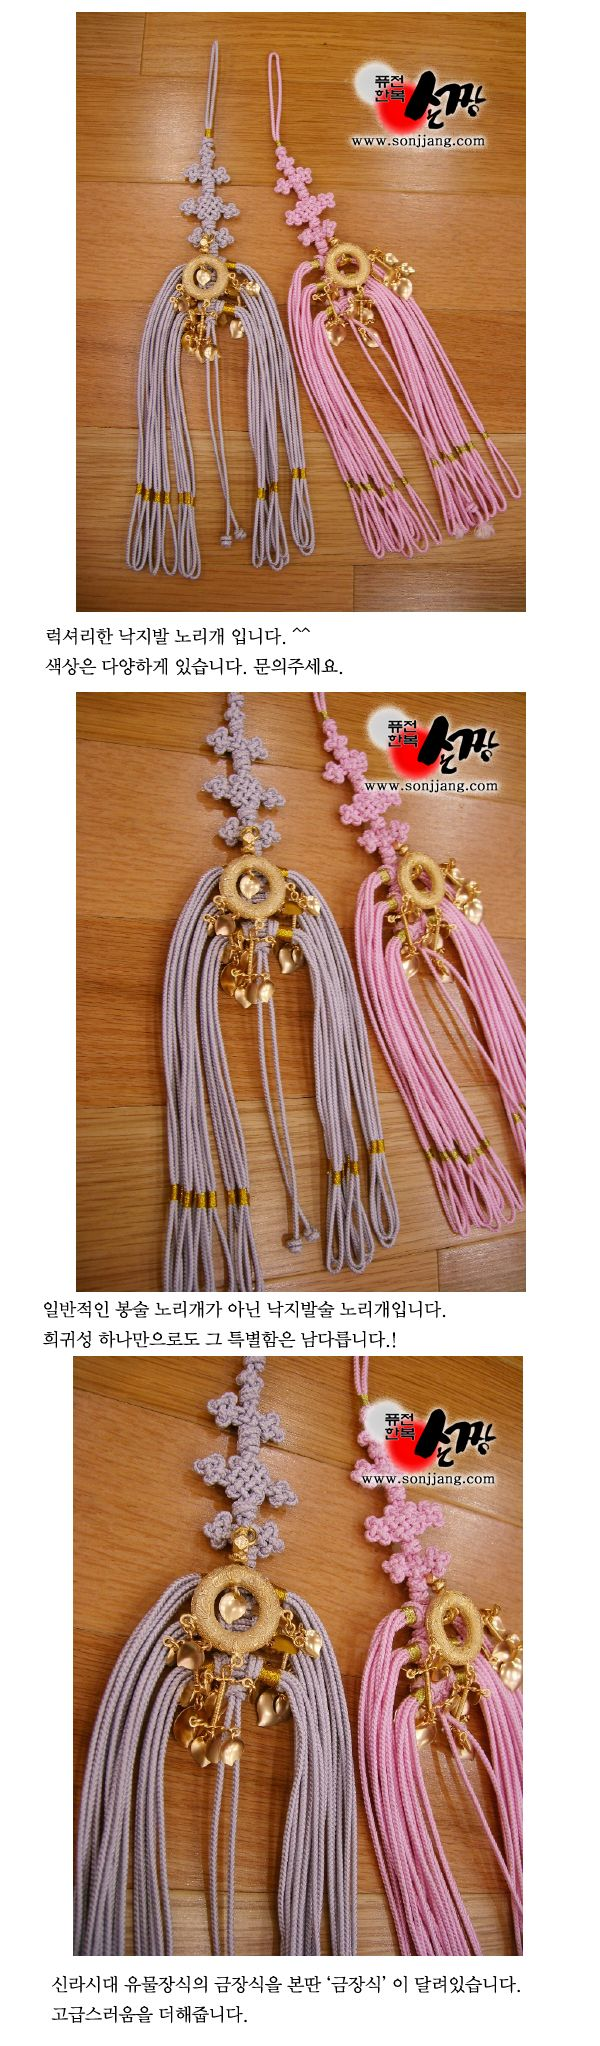 HANBOK -accessories for korean clothes,dress. hanbok shoes,norigae,korean traditional accessory shilla norigae ornaments